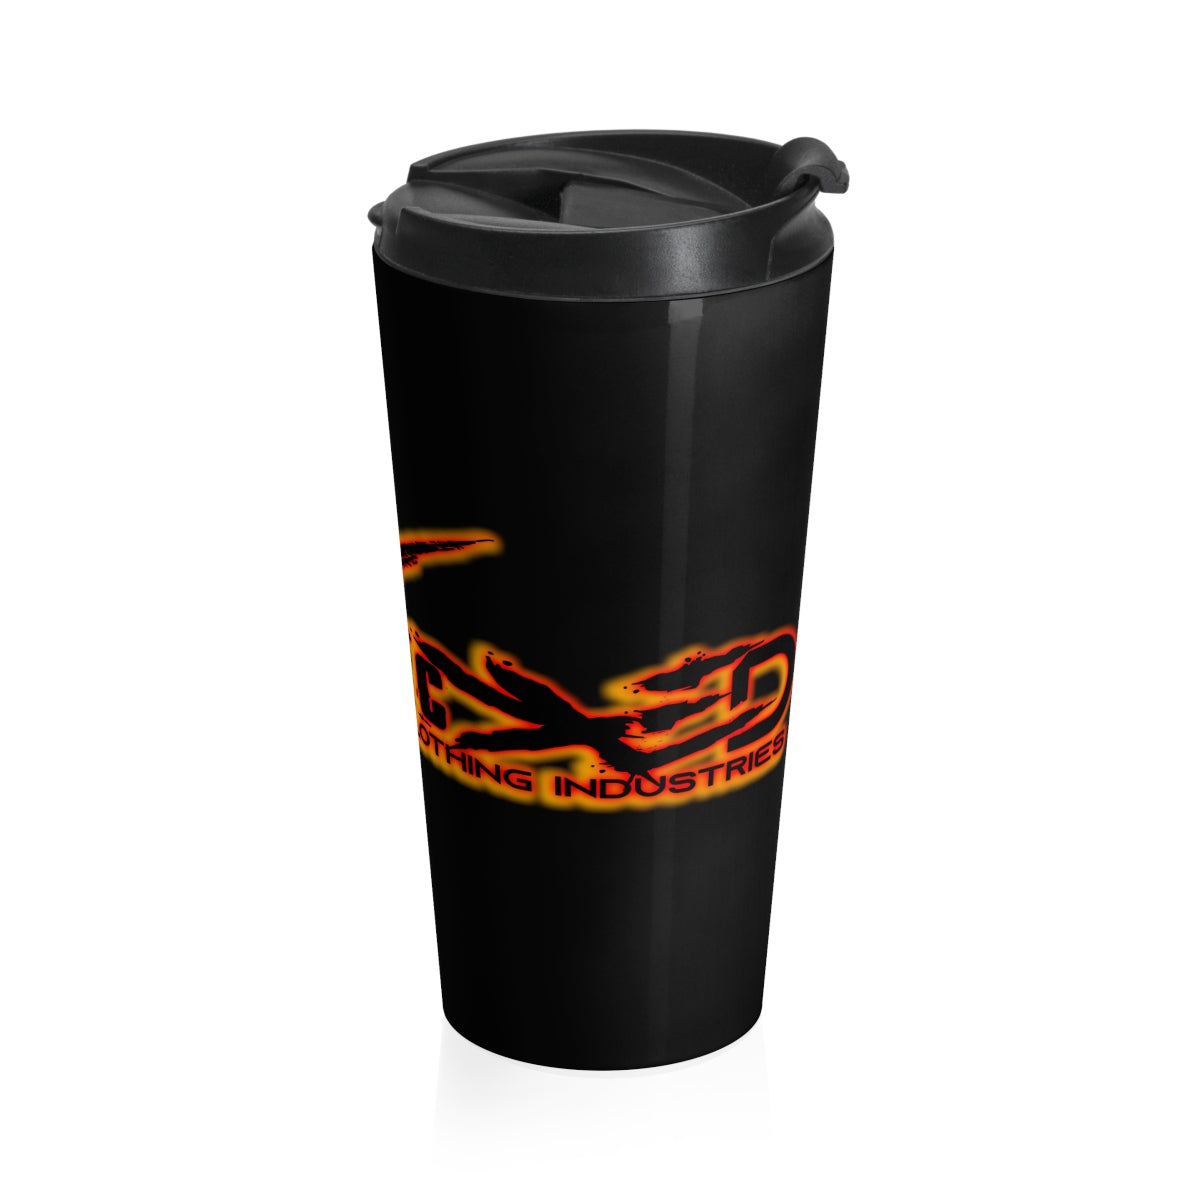 Sunrise Wicked/Stainless Steel Travel Mug